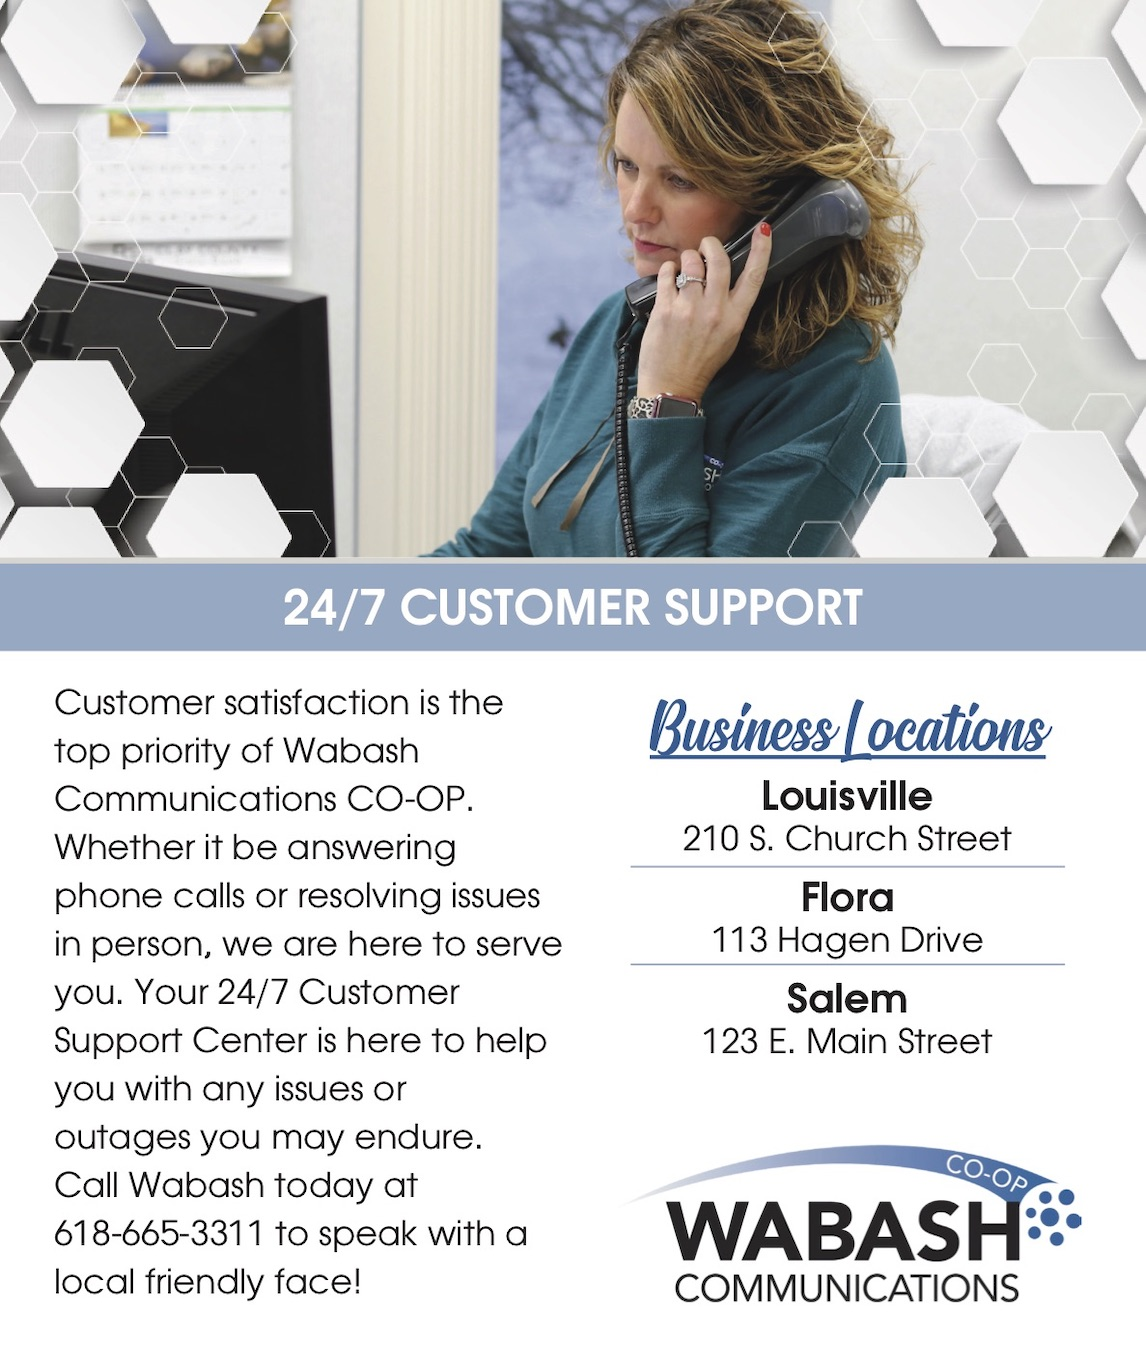 Customer Service - Download Images to View